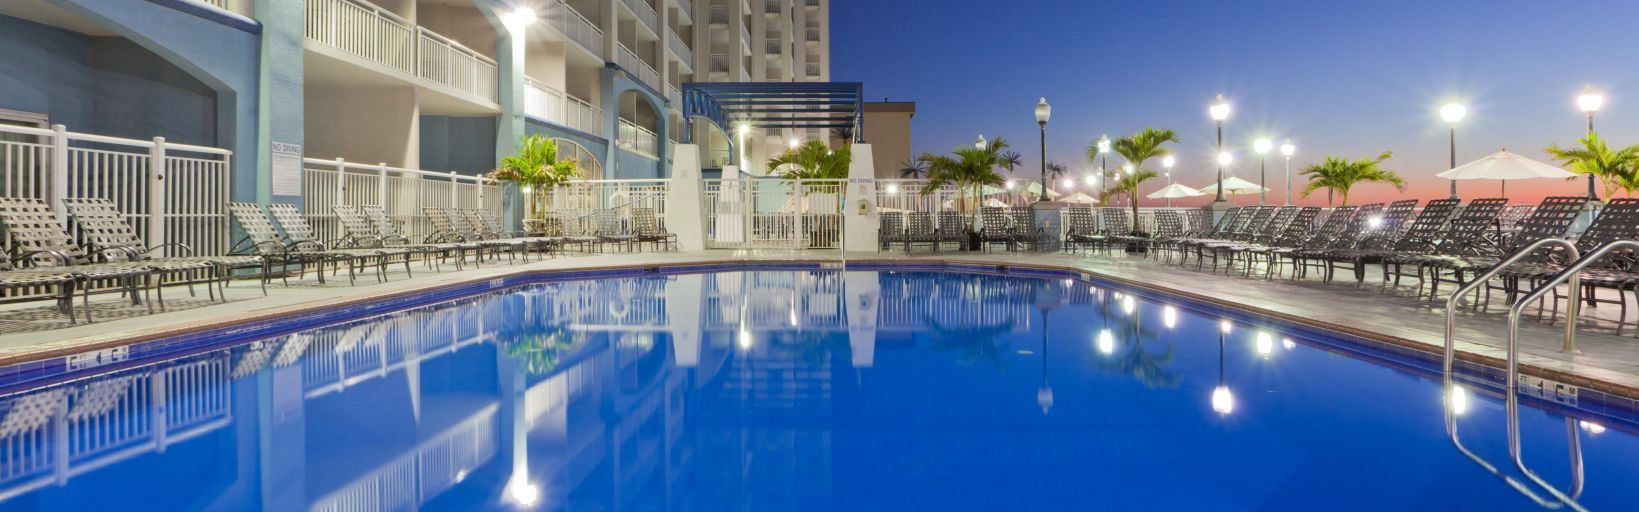 Holiday Inn Hotel and Suites,  Ocean - 6